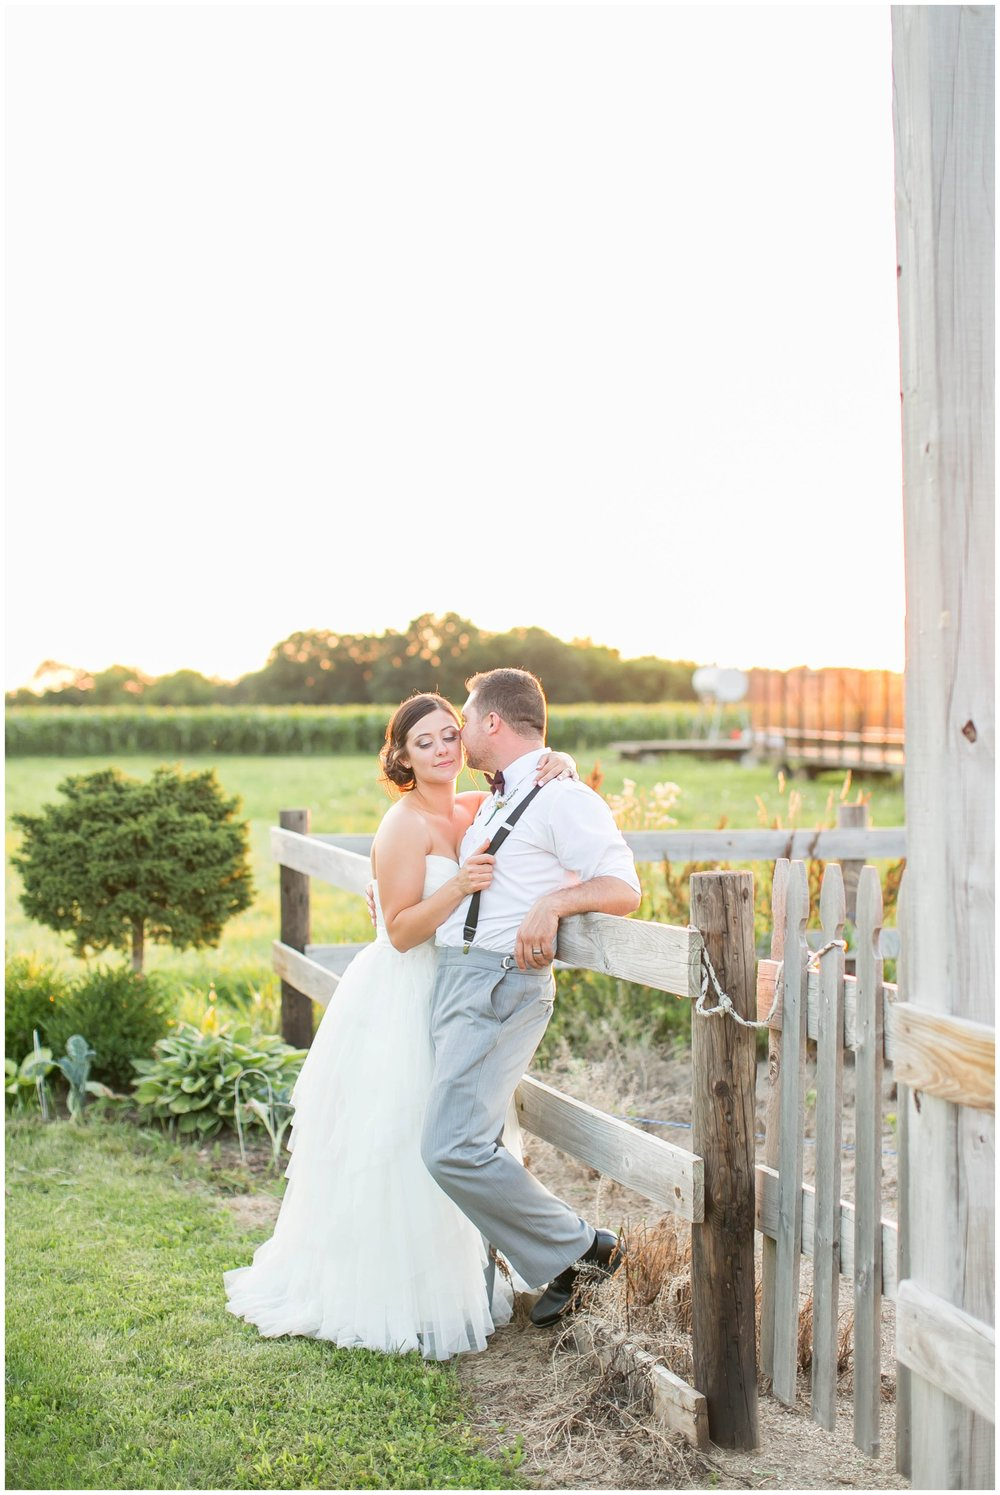 Schusters_Farm_Wedding_Deerfield_Wisconsin_0165.jpg